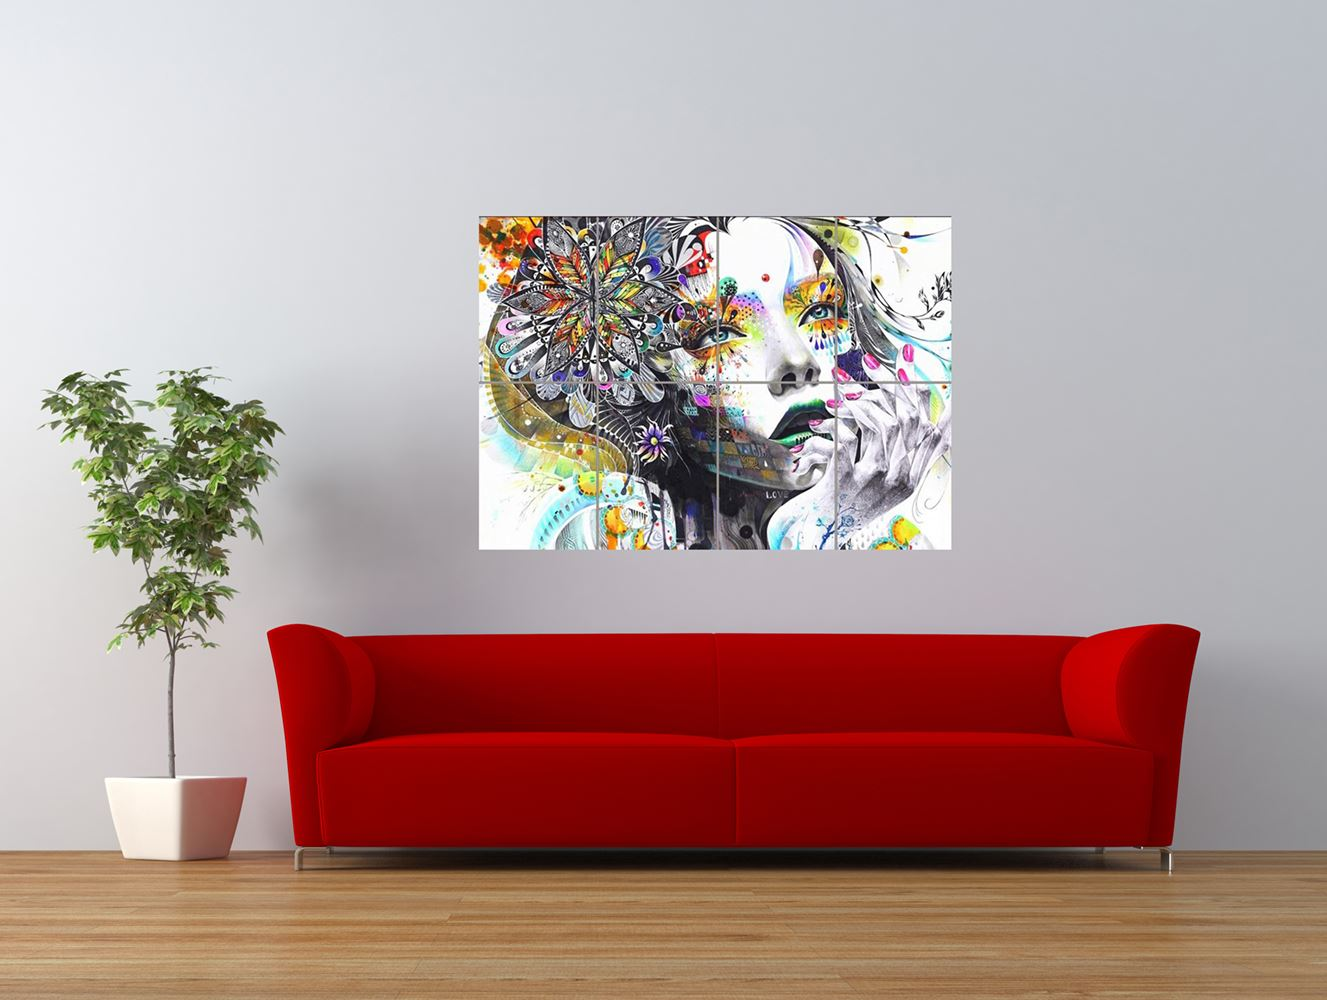 PAINTING-PSYCHEDELIC-GIRL-STREET-GRAFFITI-GIANT-ART-PRINT-PANEL-POSTER